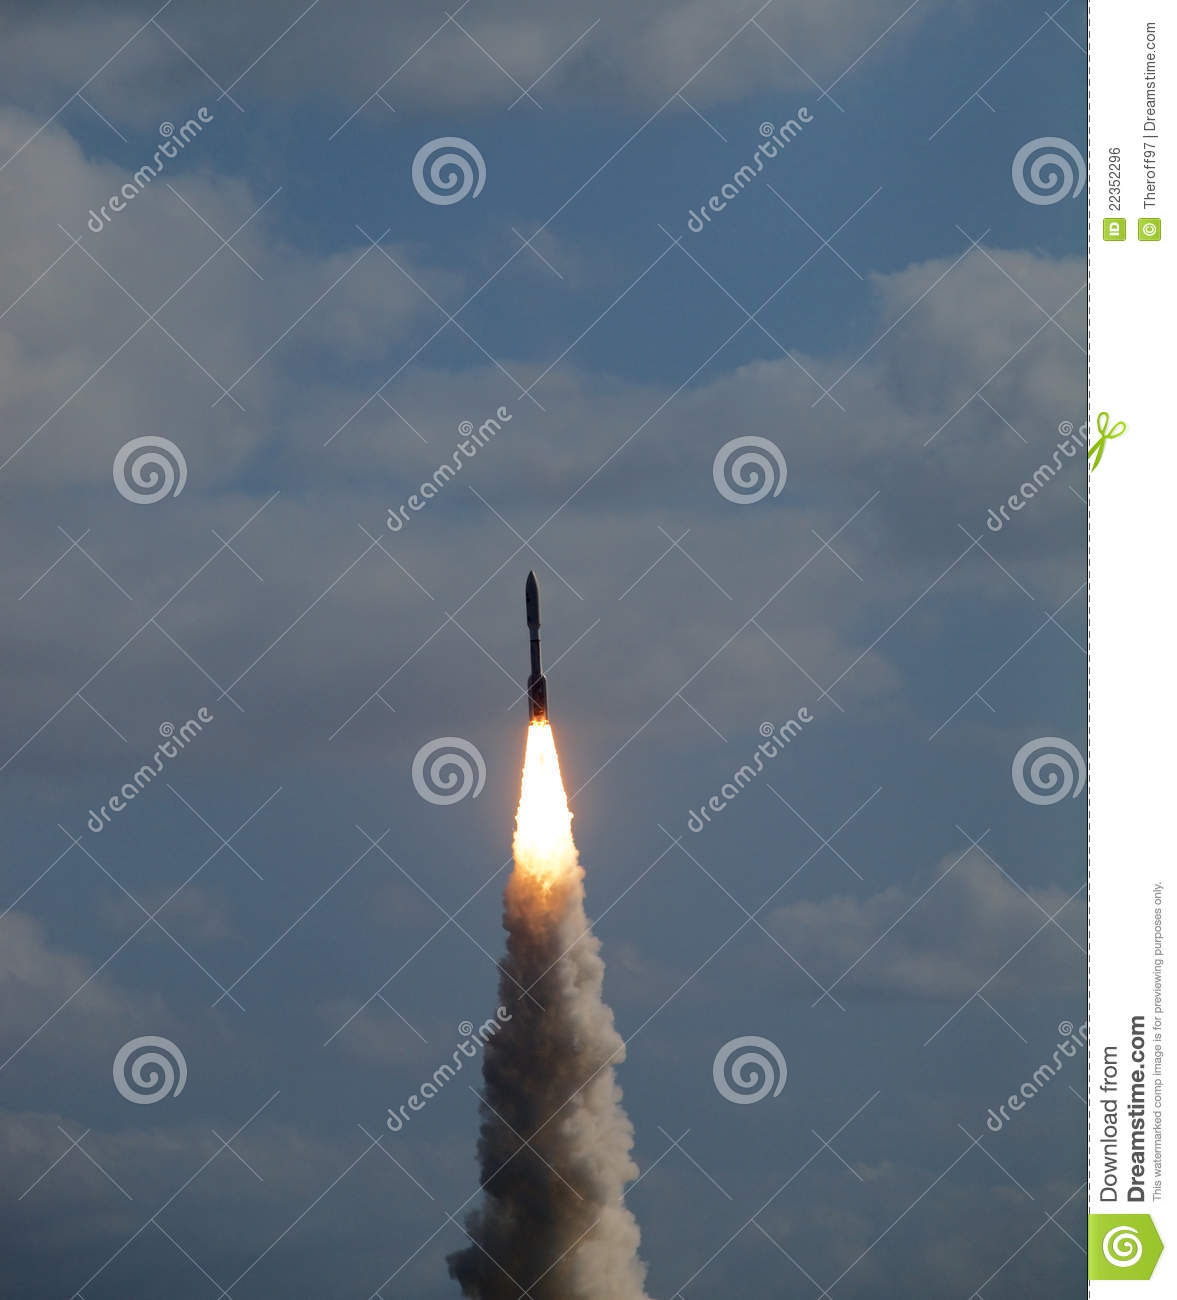 Mars Rover Launch Royalty Free Stock Image - Image: 22352296